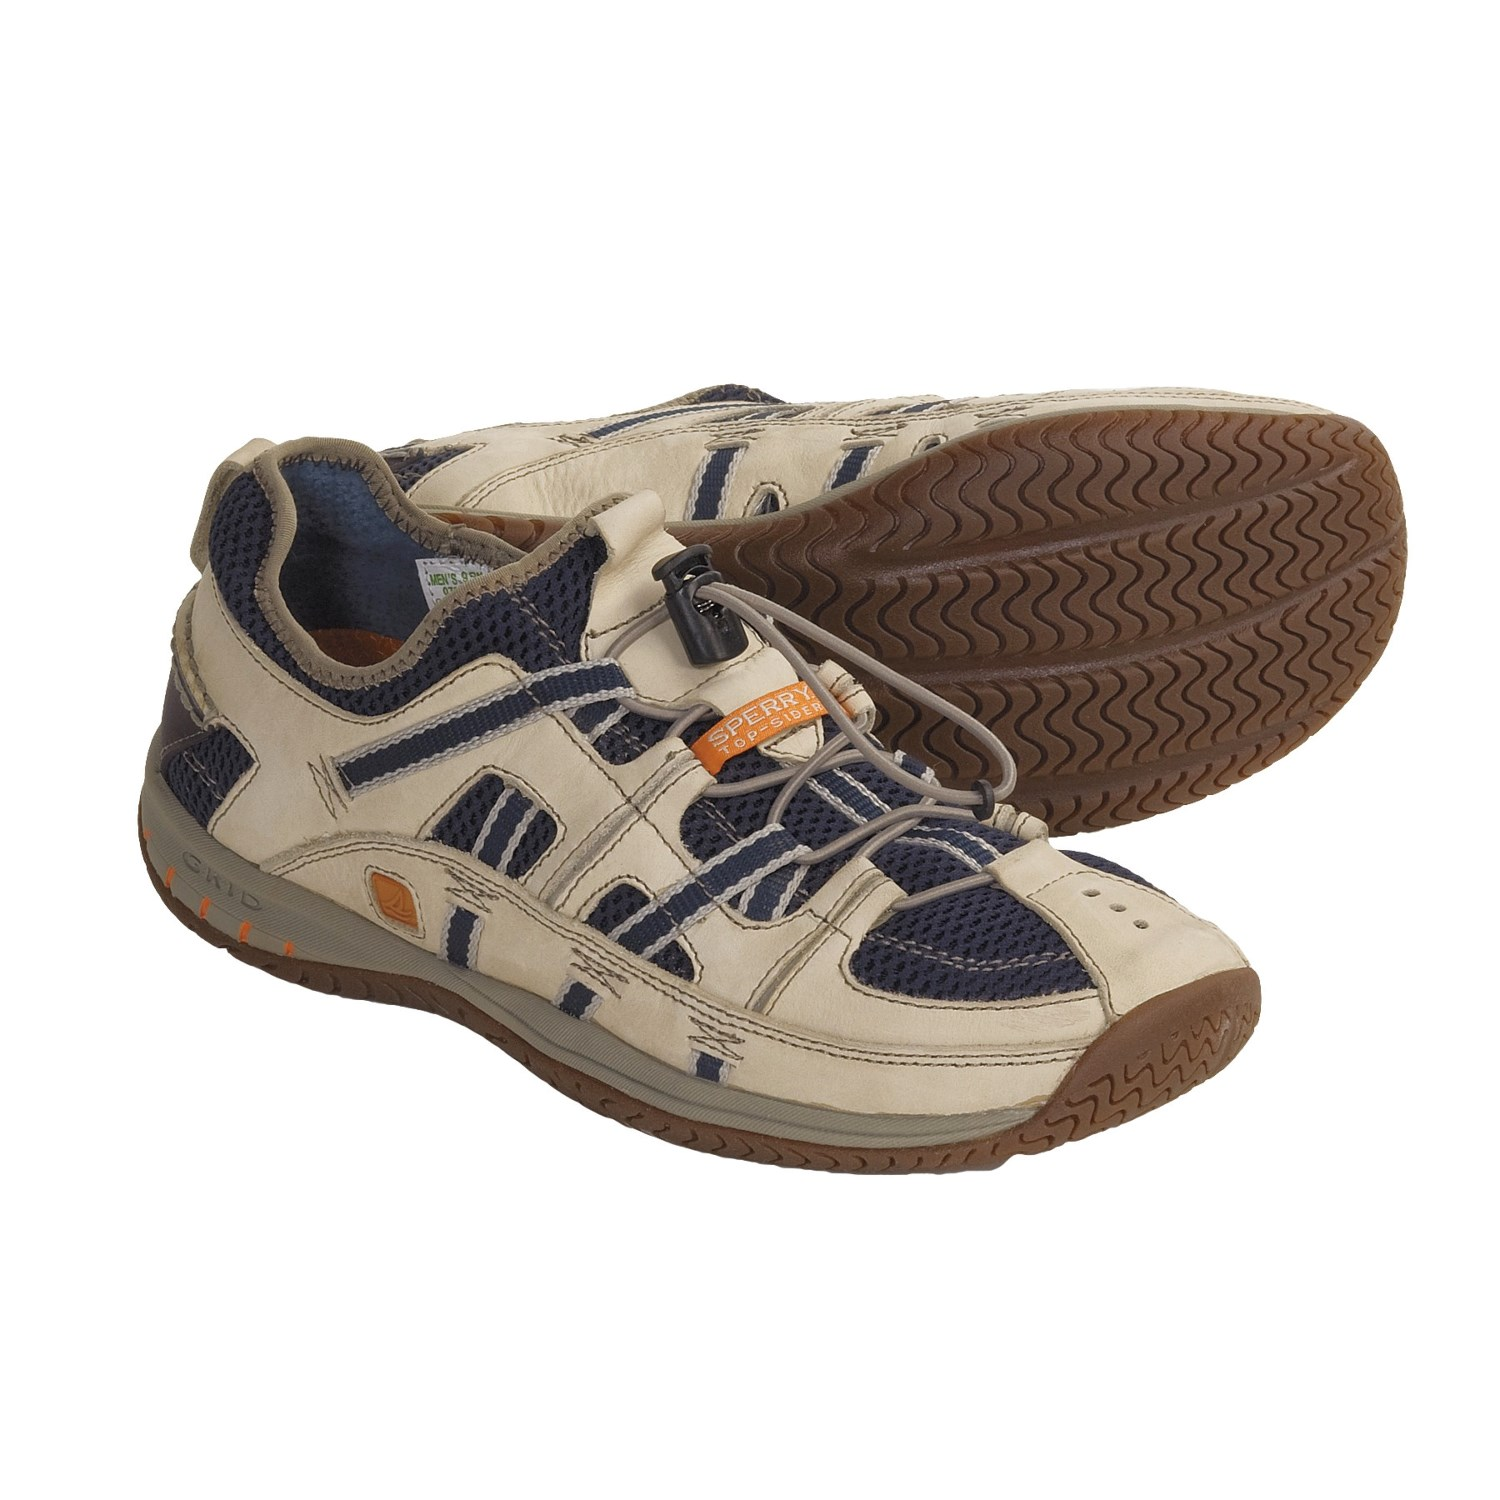 Sperry Top-Sider Cabo Sport Boat Shoes (For Men) in Oyster/Navy